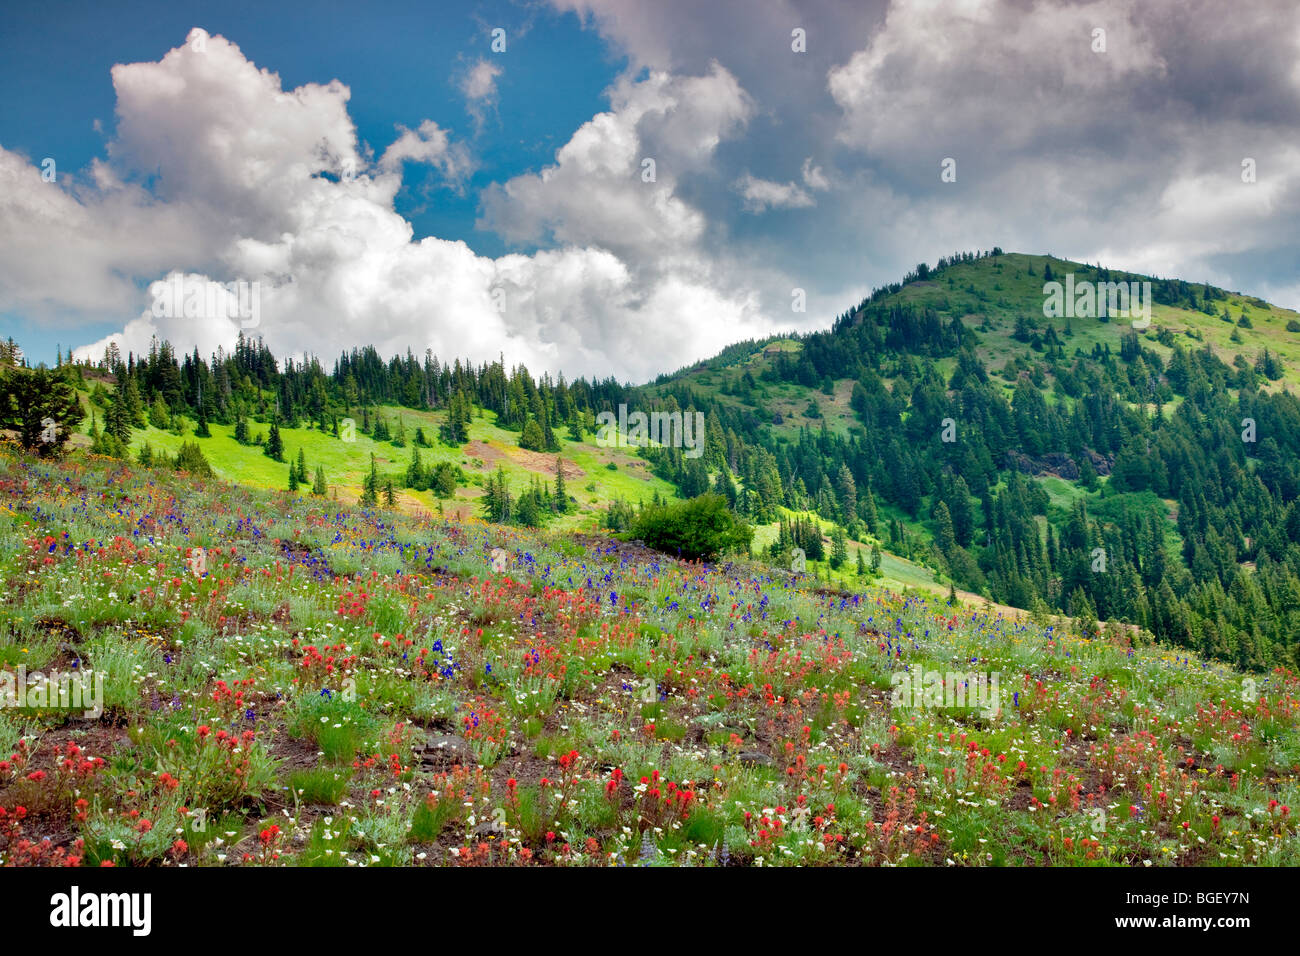 Echo Mountain with wildflowers and clouds. Linn County, Oregon. - Stock Image